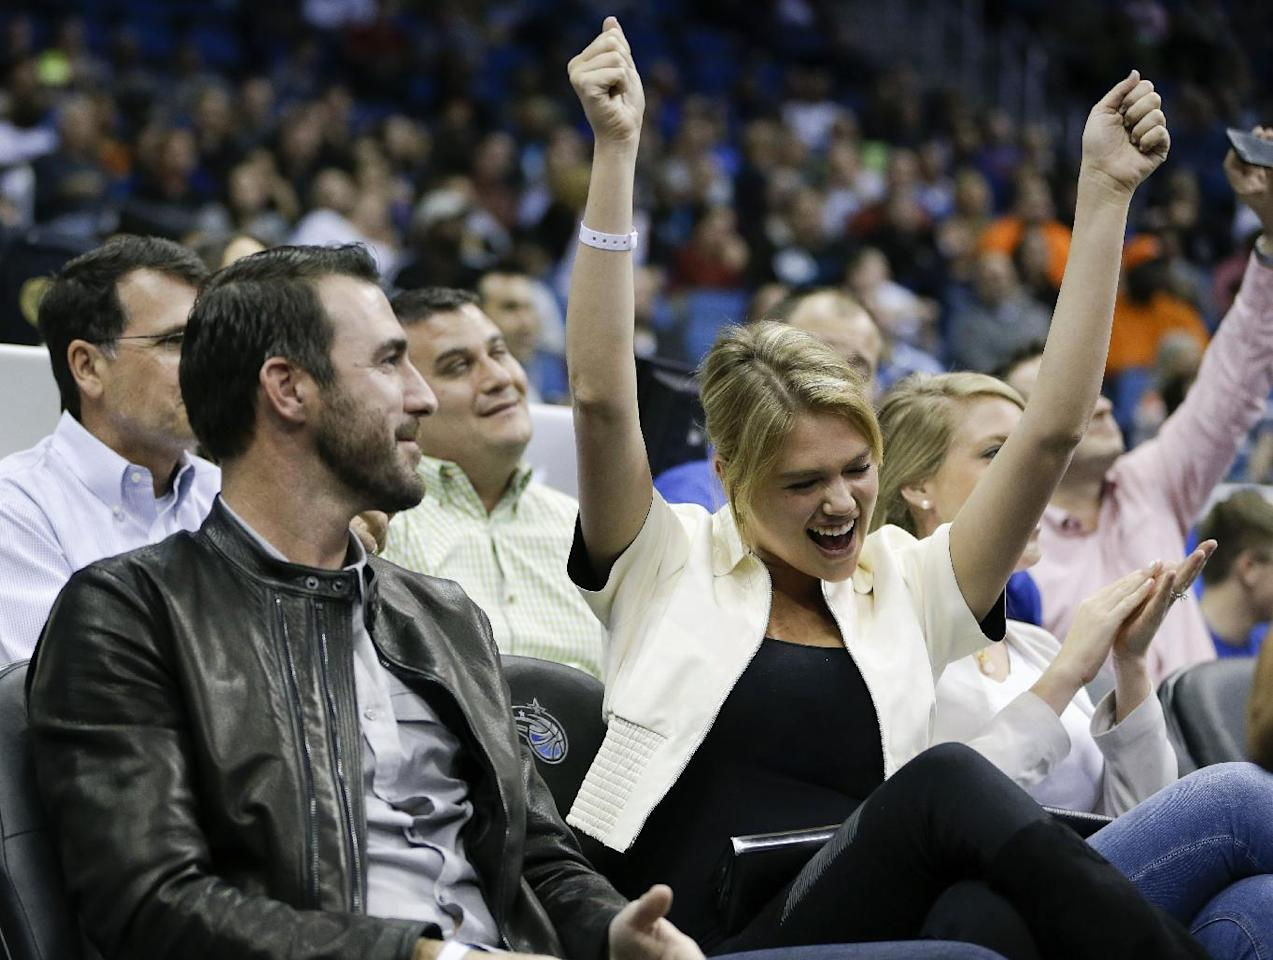 Detroit Tigers pitcher Justin Verlander, left, and model Kate Upton cheer during the first half of an NBA basketball game between the Orlando Magic and the Oklahoma City Thunder in Orlando, Fla., Friday, Feb. 7, 2014. (AP Photo/John Raoux)